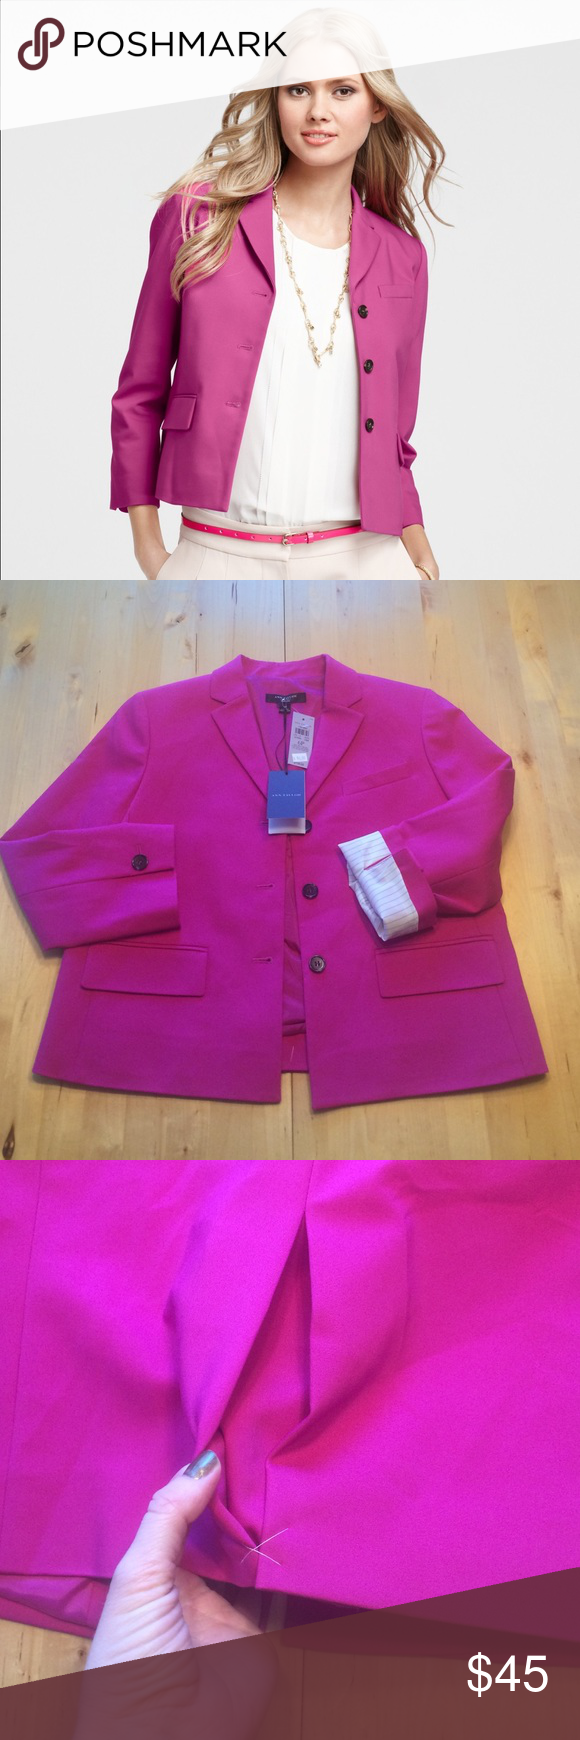 """Ann Taylor Blazer NWT Ann Taylor Petite compact doubleweave blazer in pink. Versatile fabric that stretches where you need it but also drapes beautifully. Size 6P. Measures 19"""" across bust. 20"""" from shoulder seam to hem. Arm length is 19"""". Back pleat vent has not been opened yet. Color is most accurate in photos 2-4. Classic striped lining on sleeves so it looks cute cuffed too. Ann Taylor Jackets & Coats Blazers"""